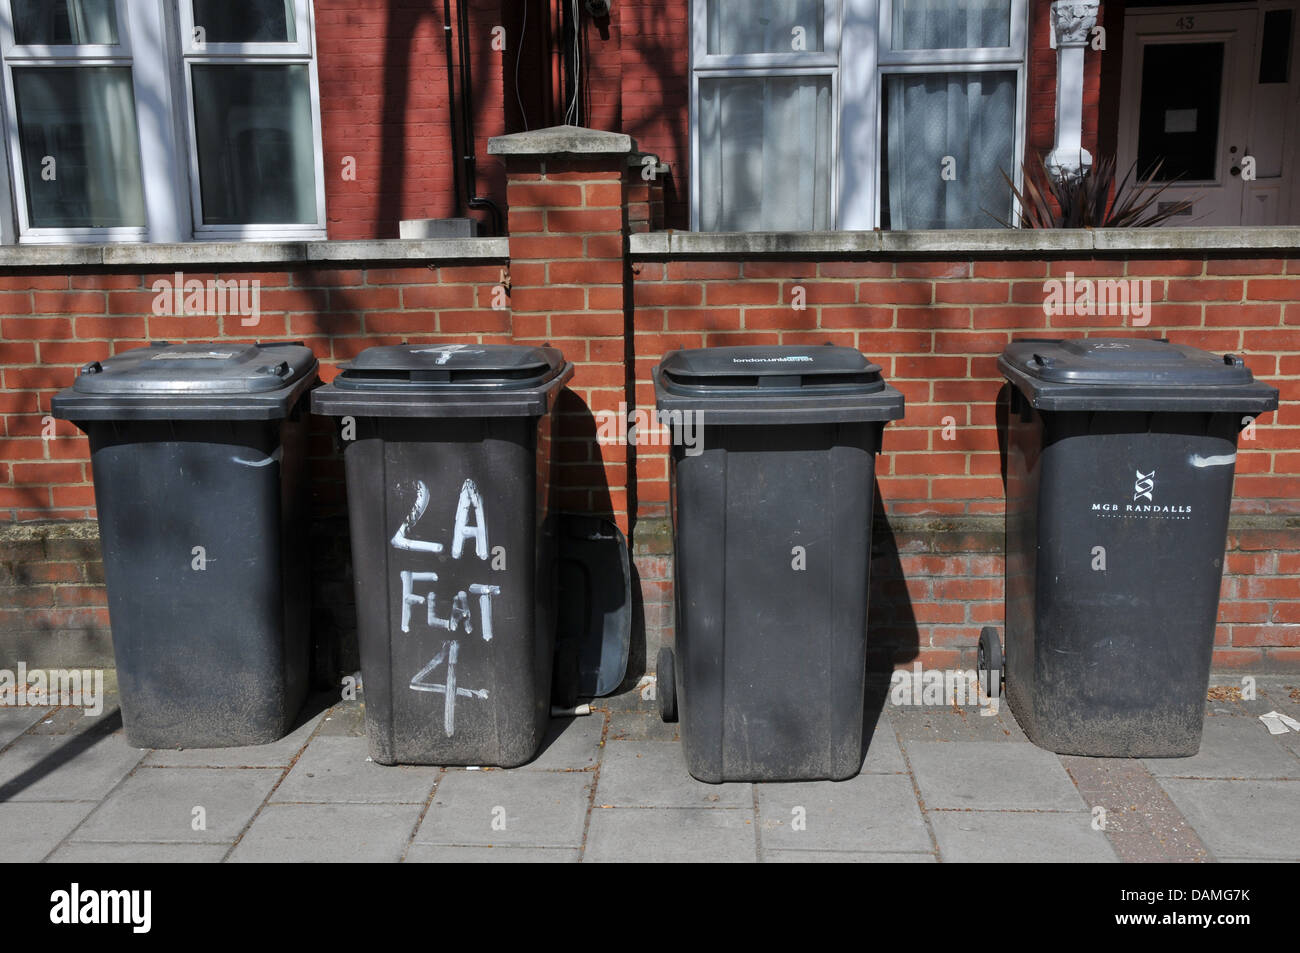 Four black rubbish bins, lined up on street, London - Stock Image